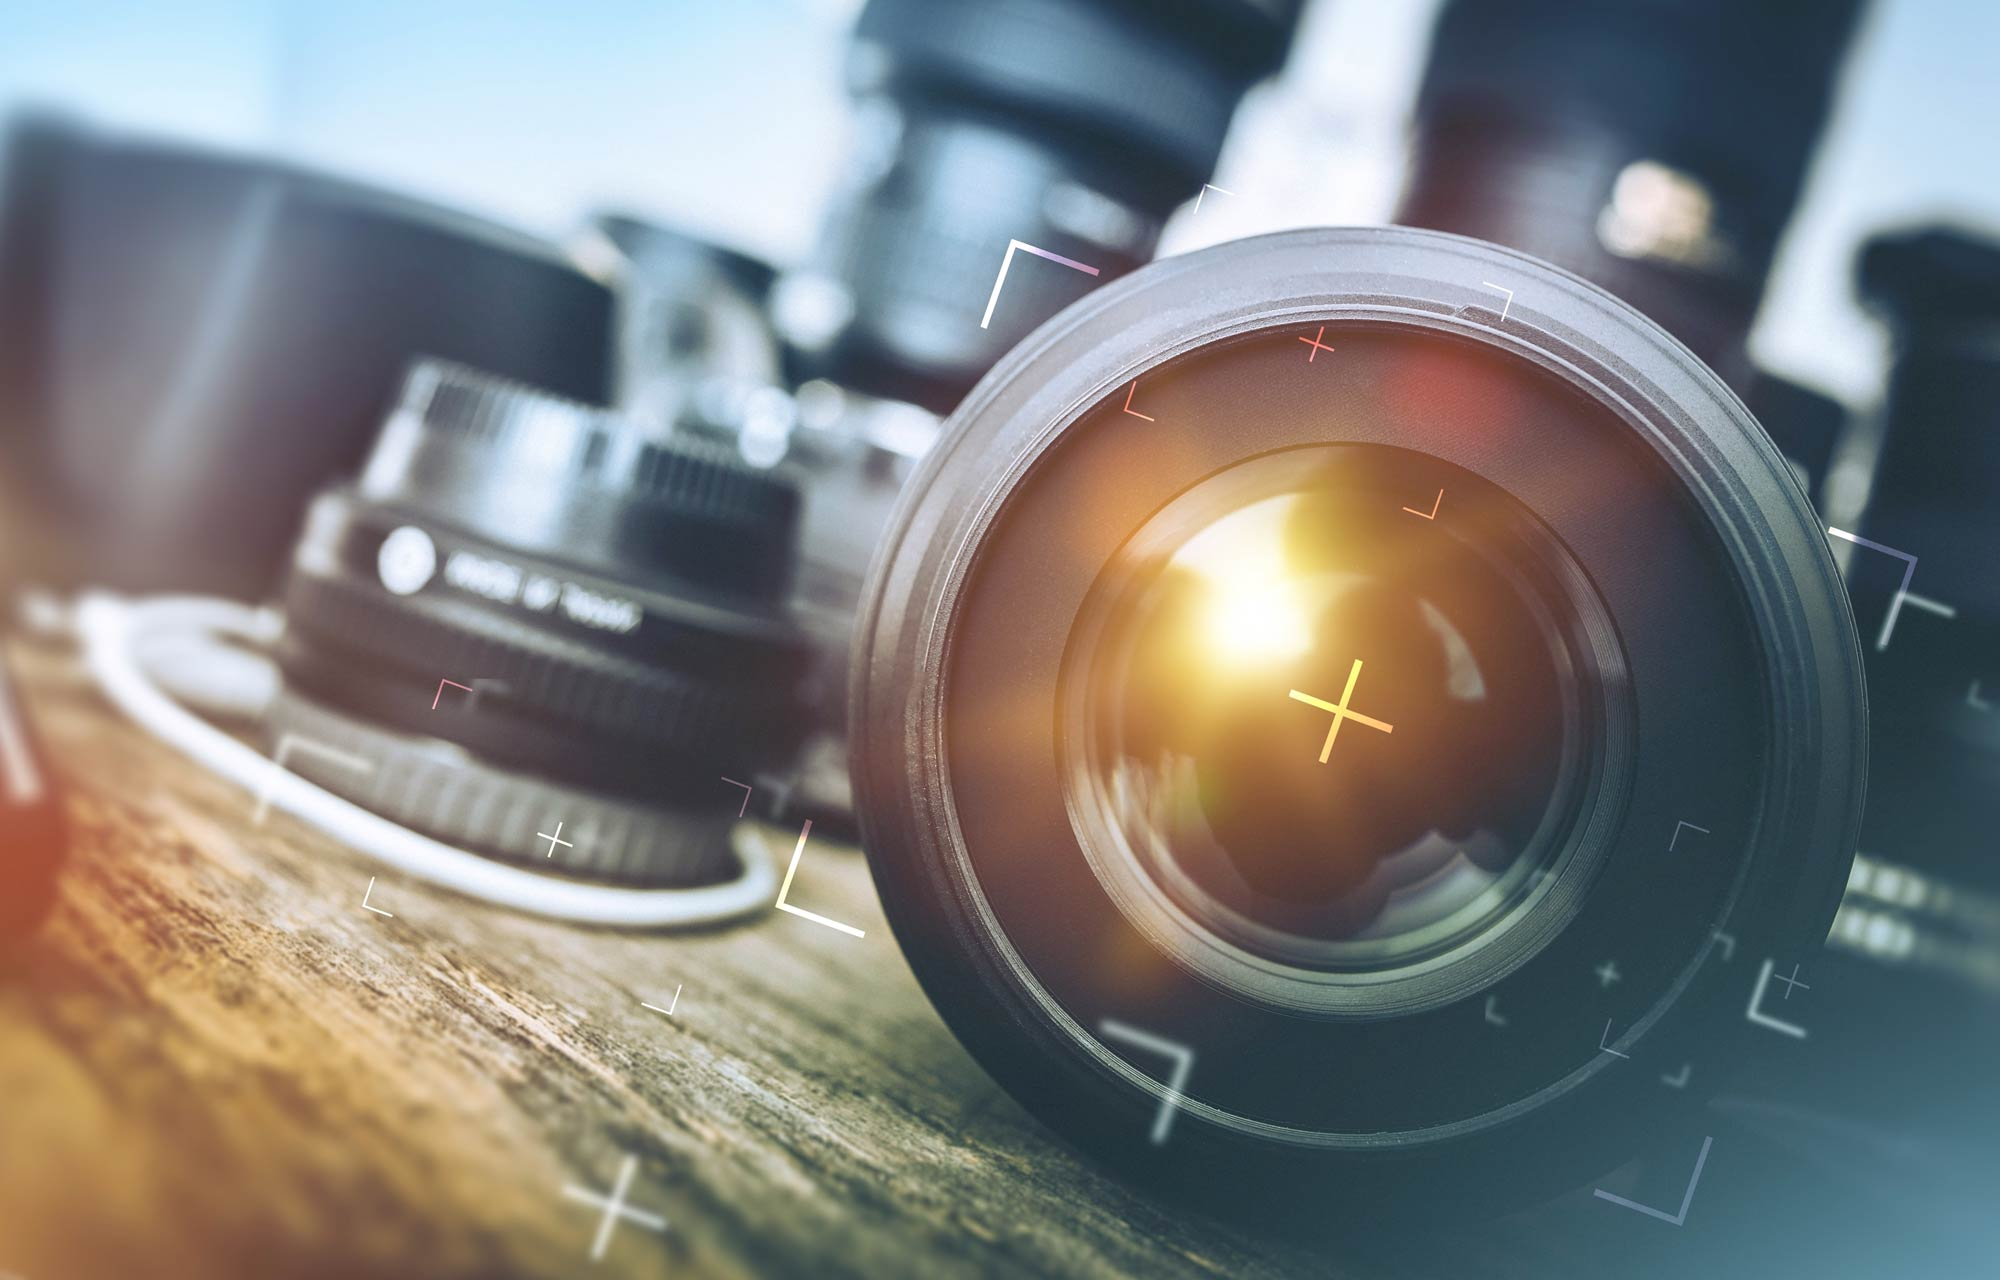 What is a lens 90